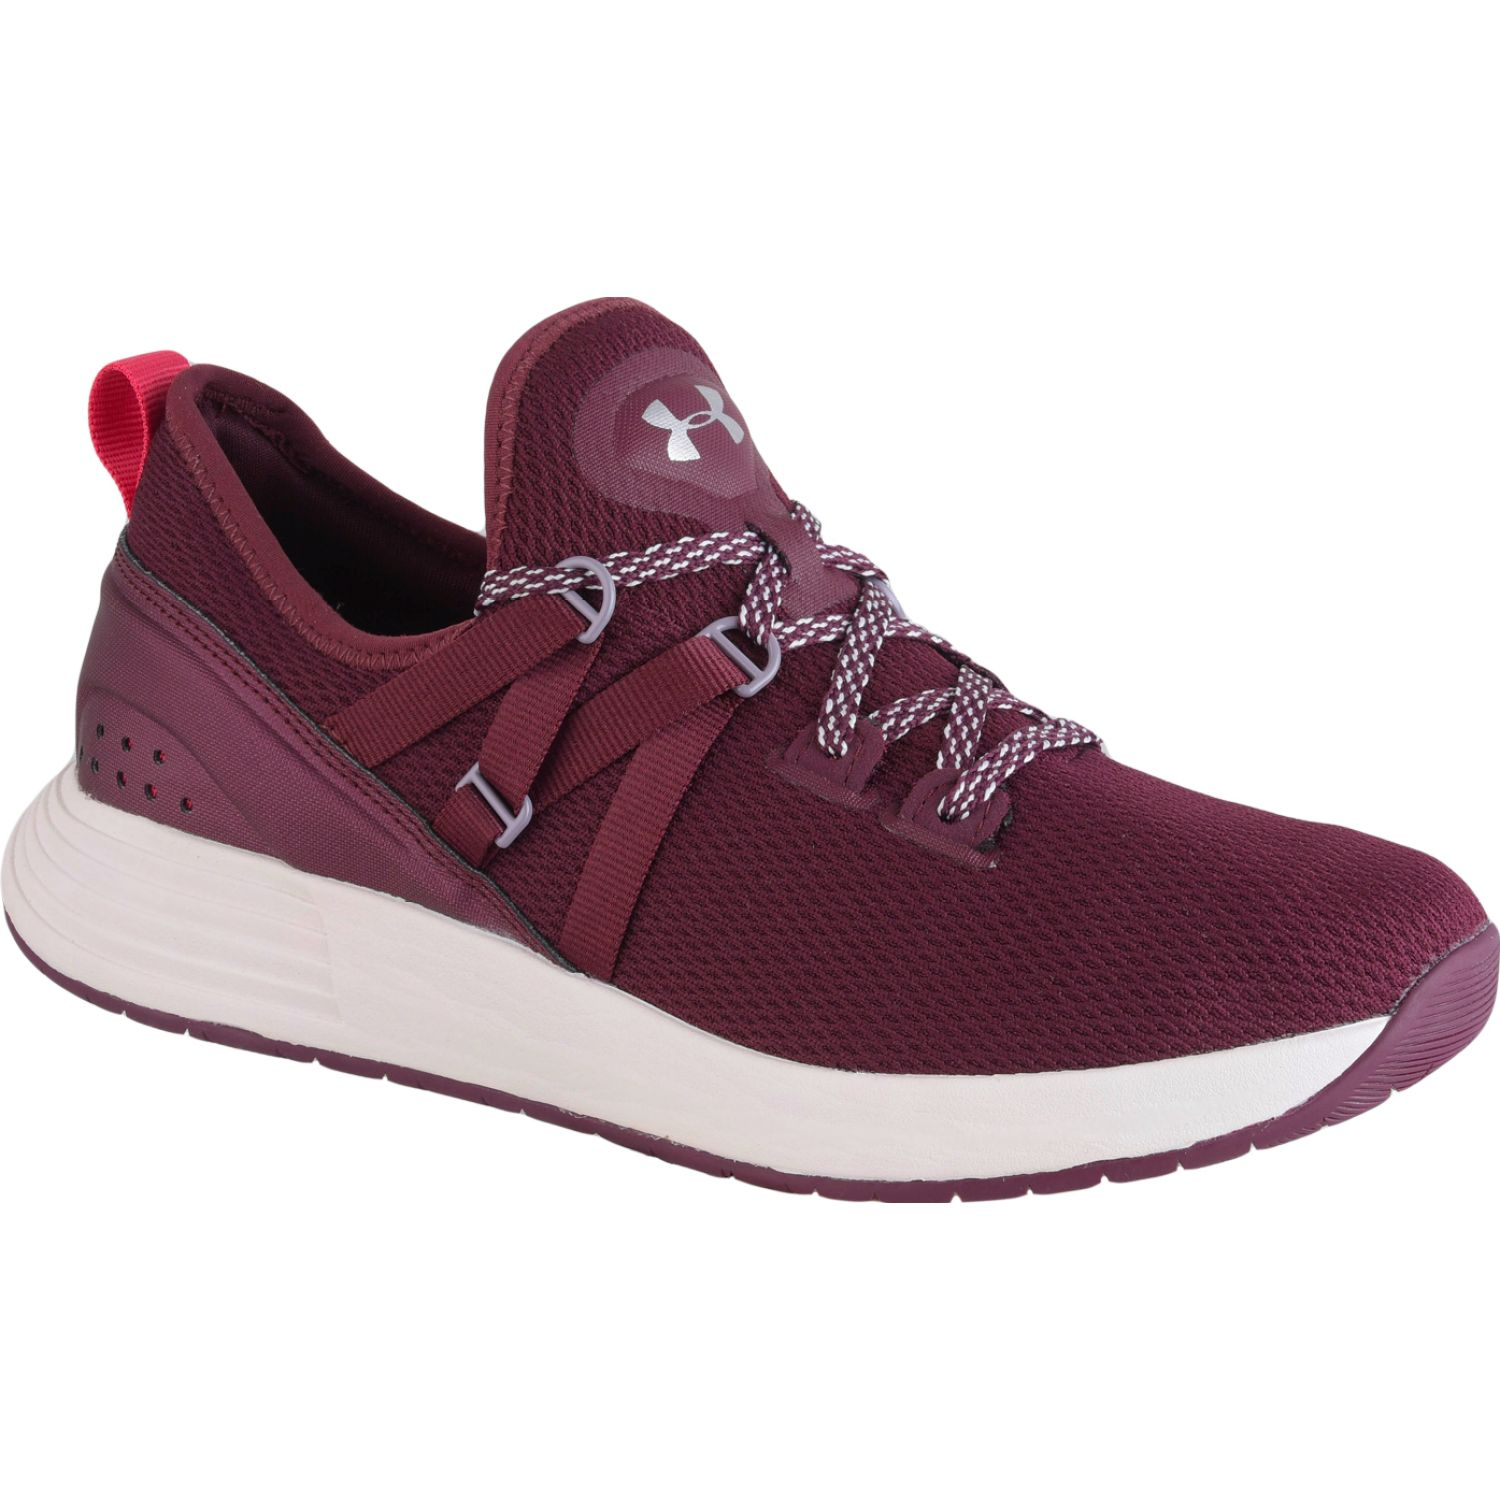 Under Armour UA W Breathe Trainer Burgundy Mujeres